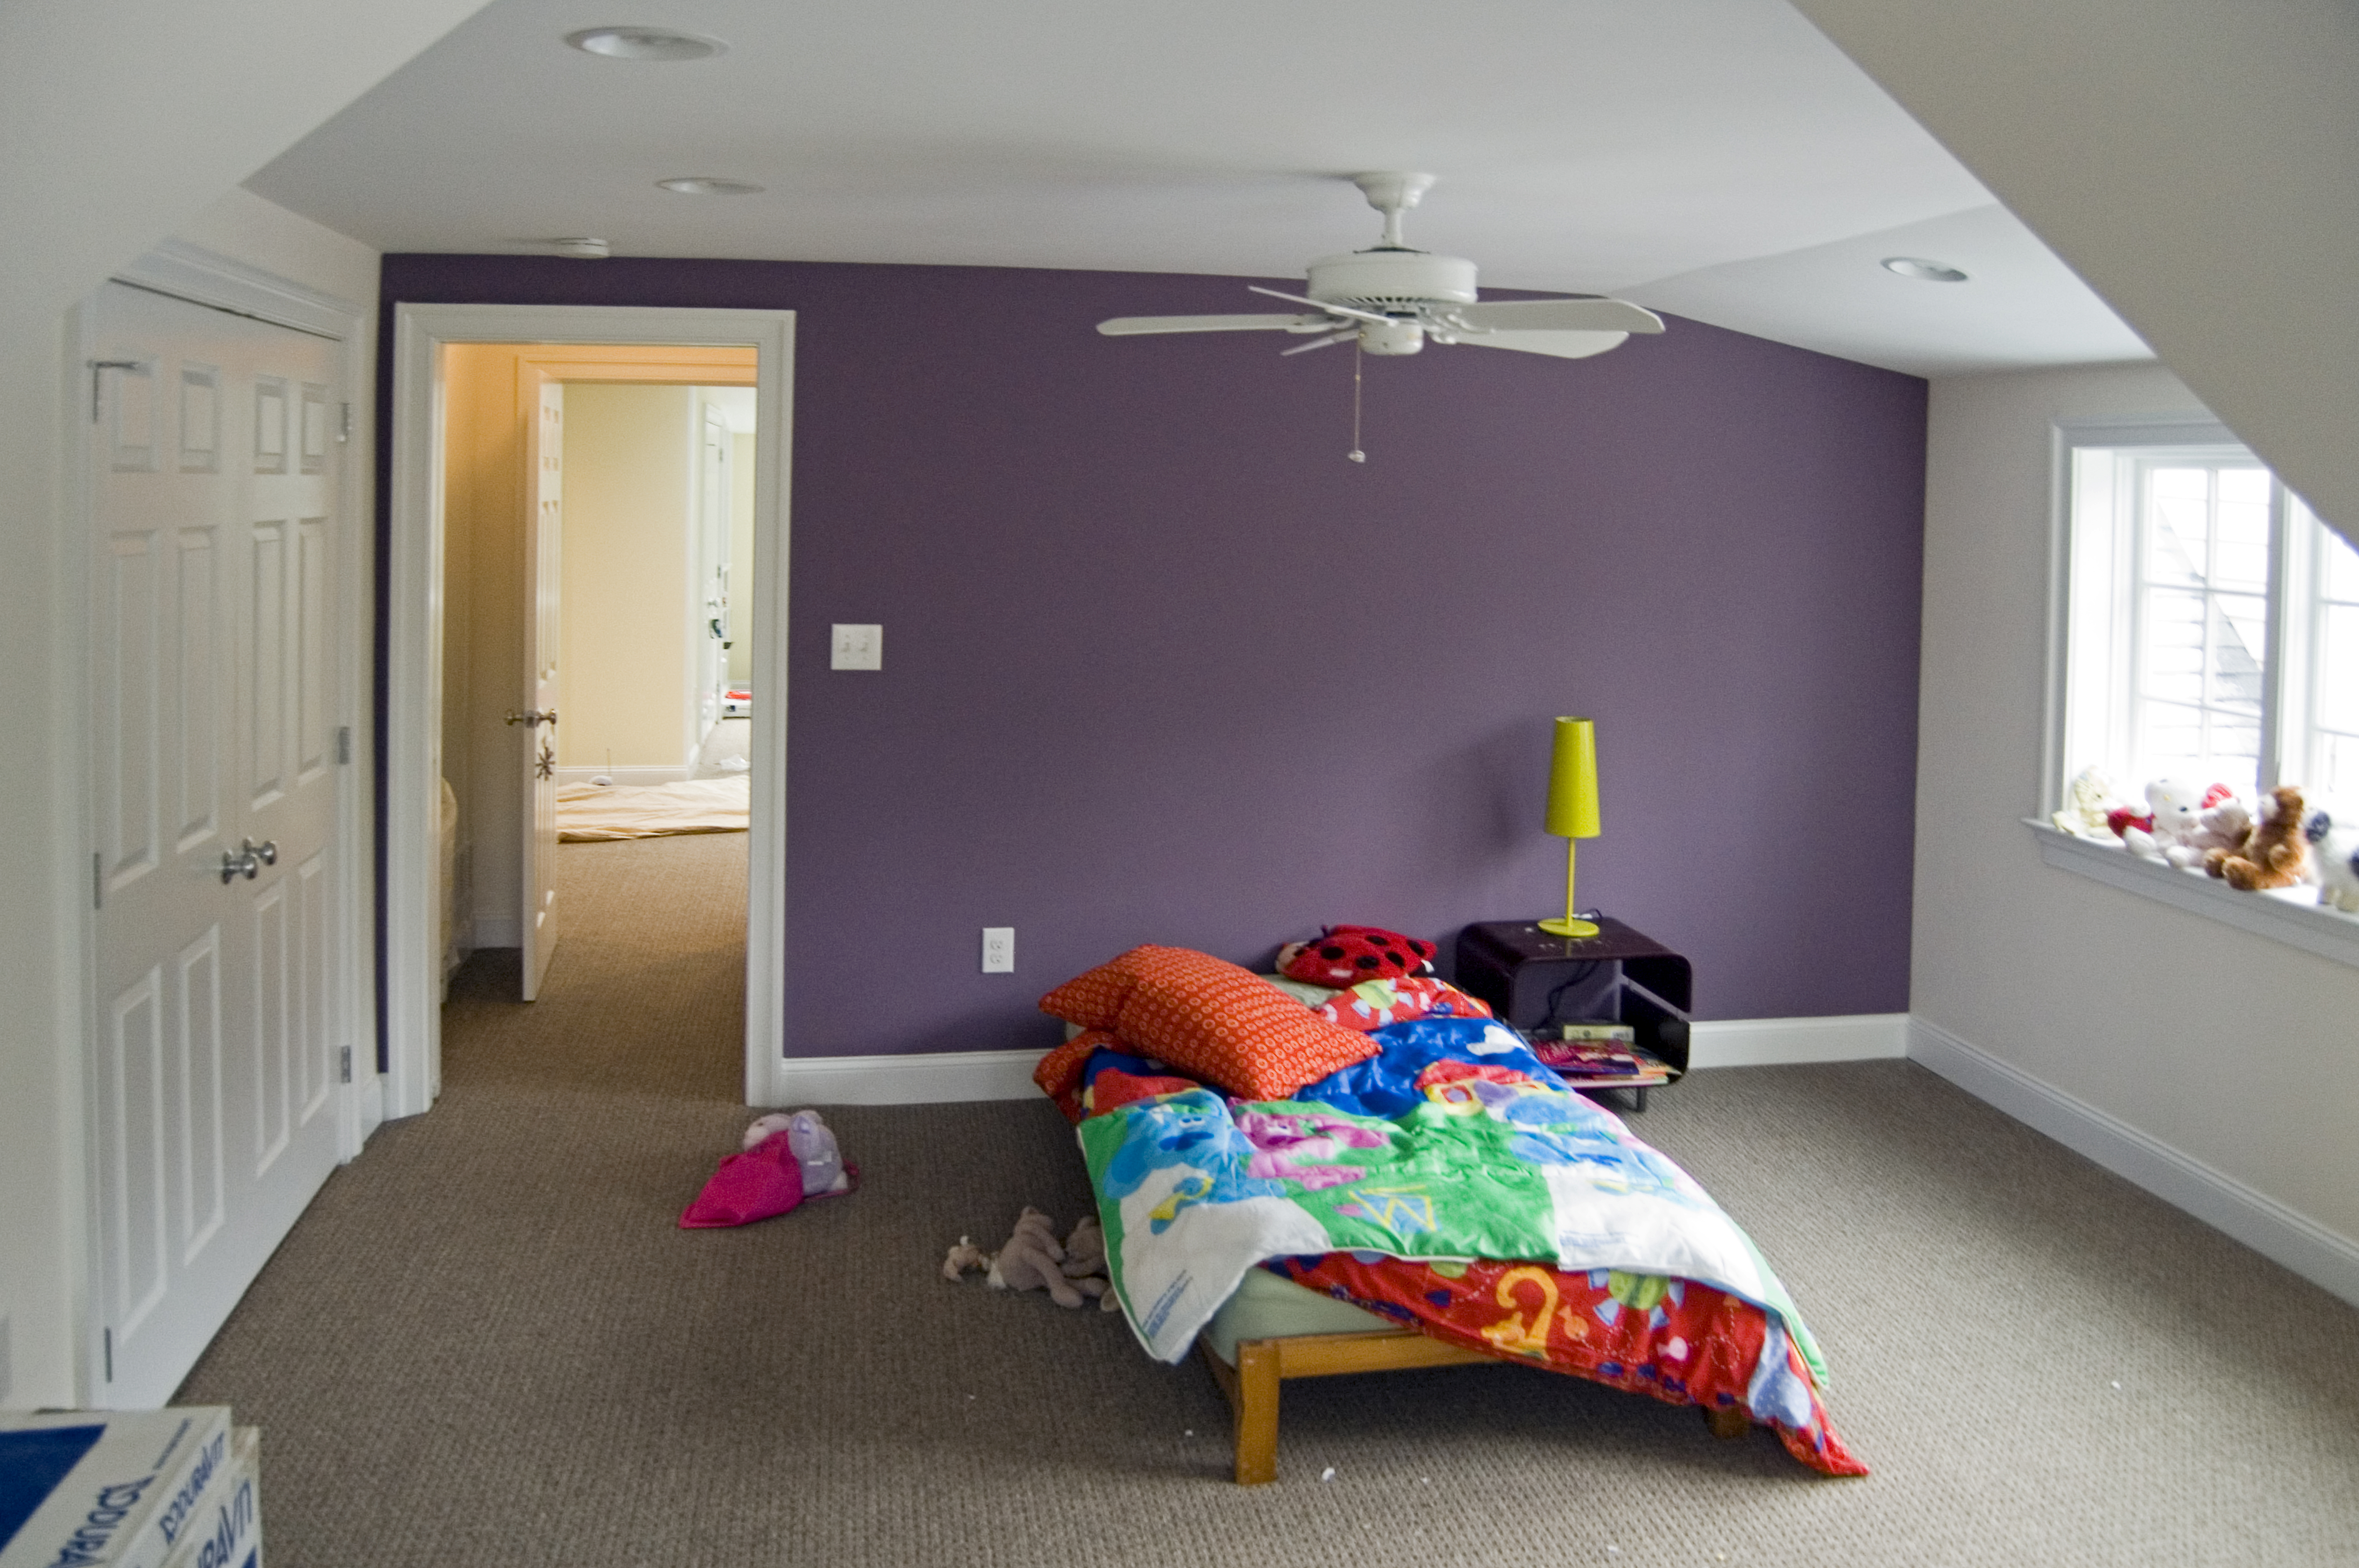 Completed Bedroom Addition in Wayne, PA